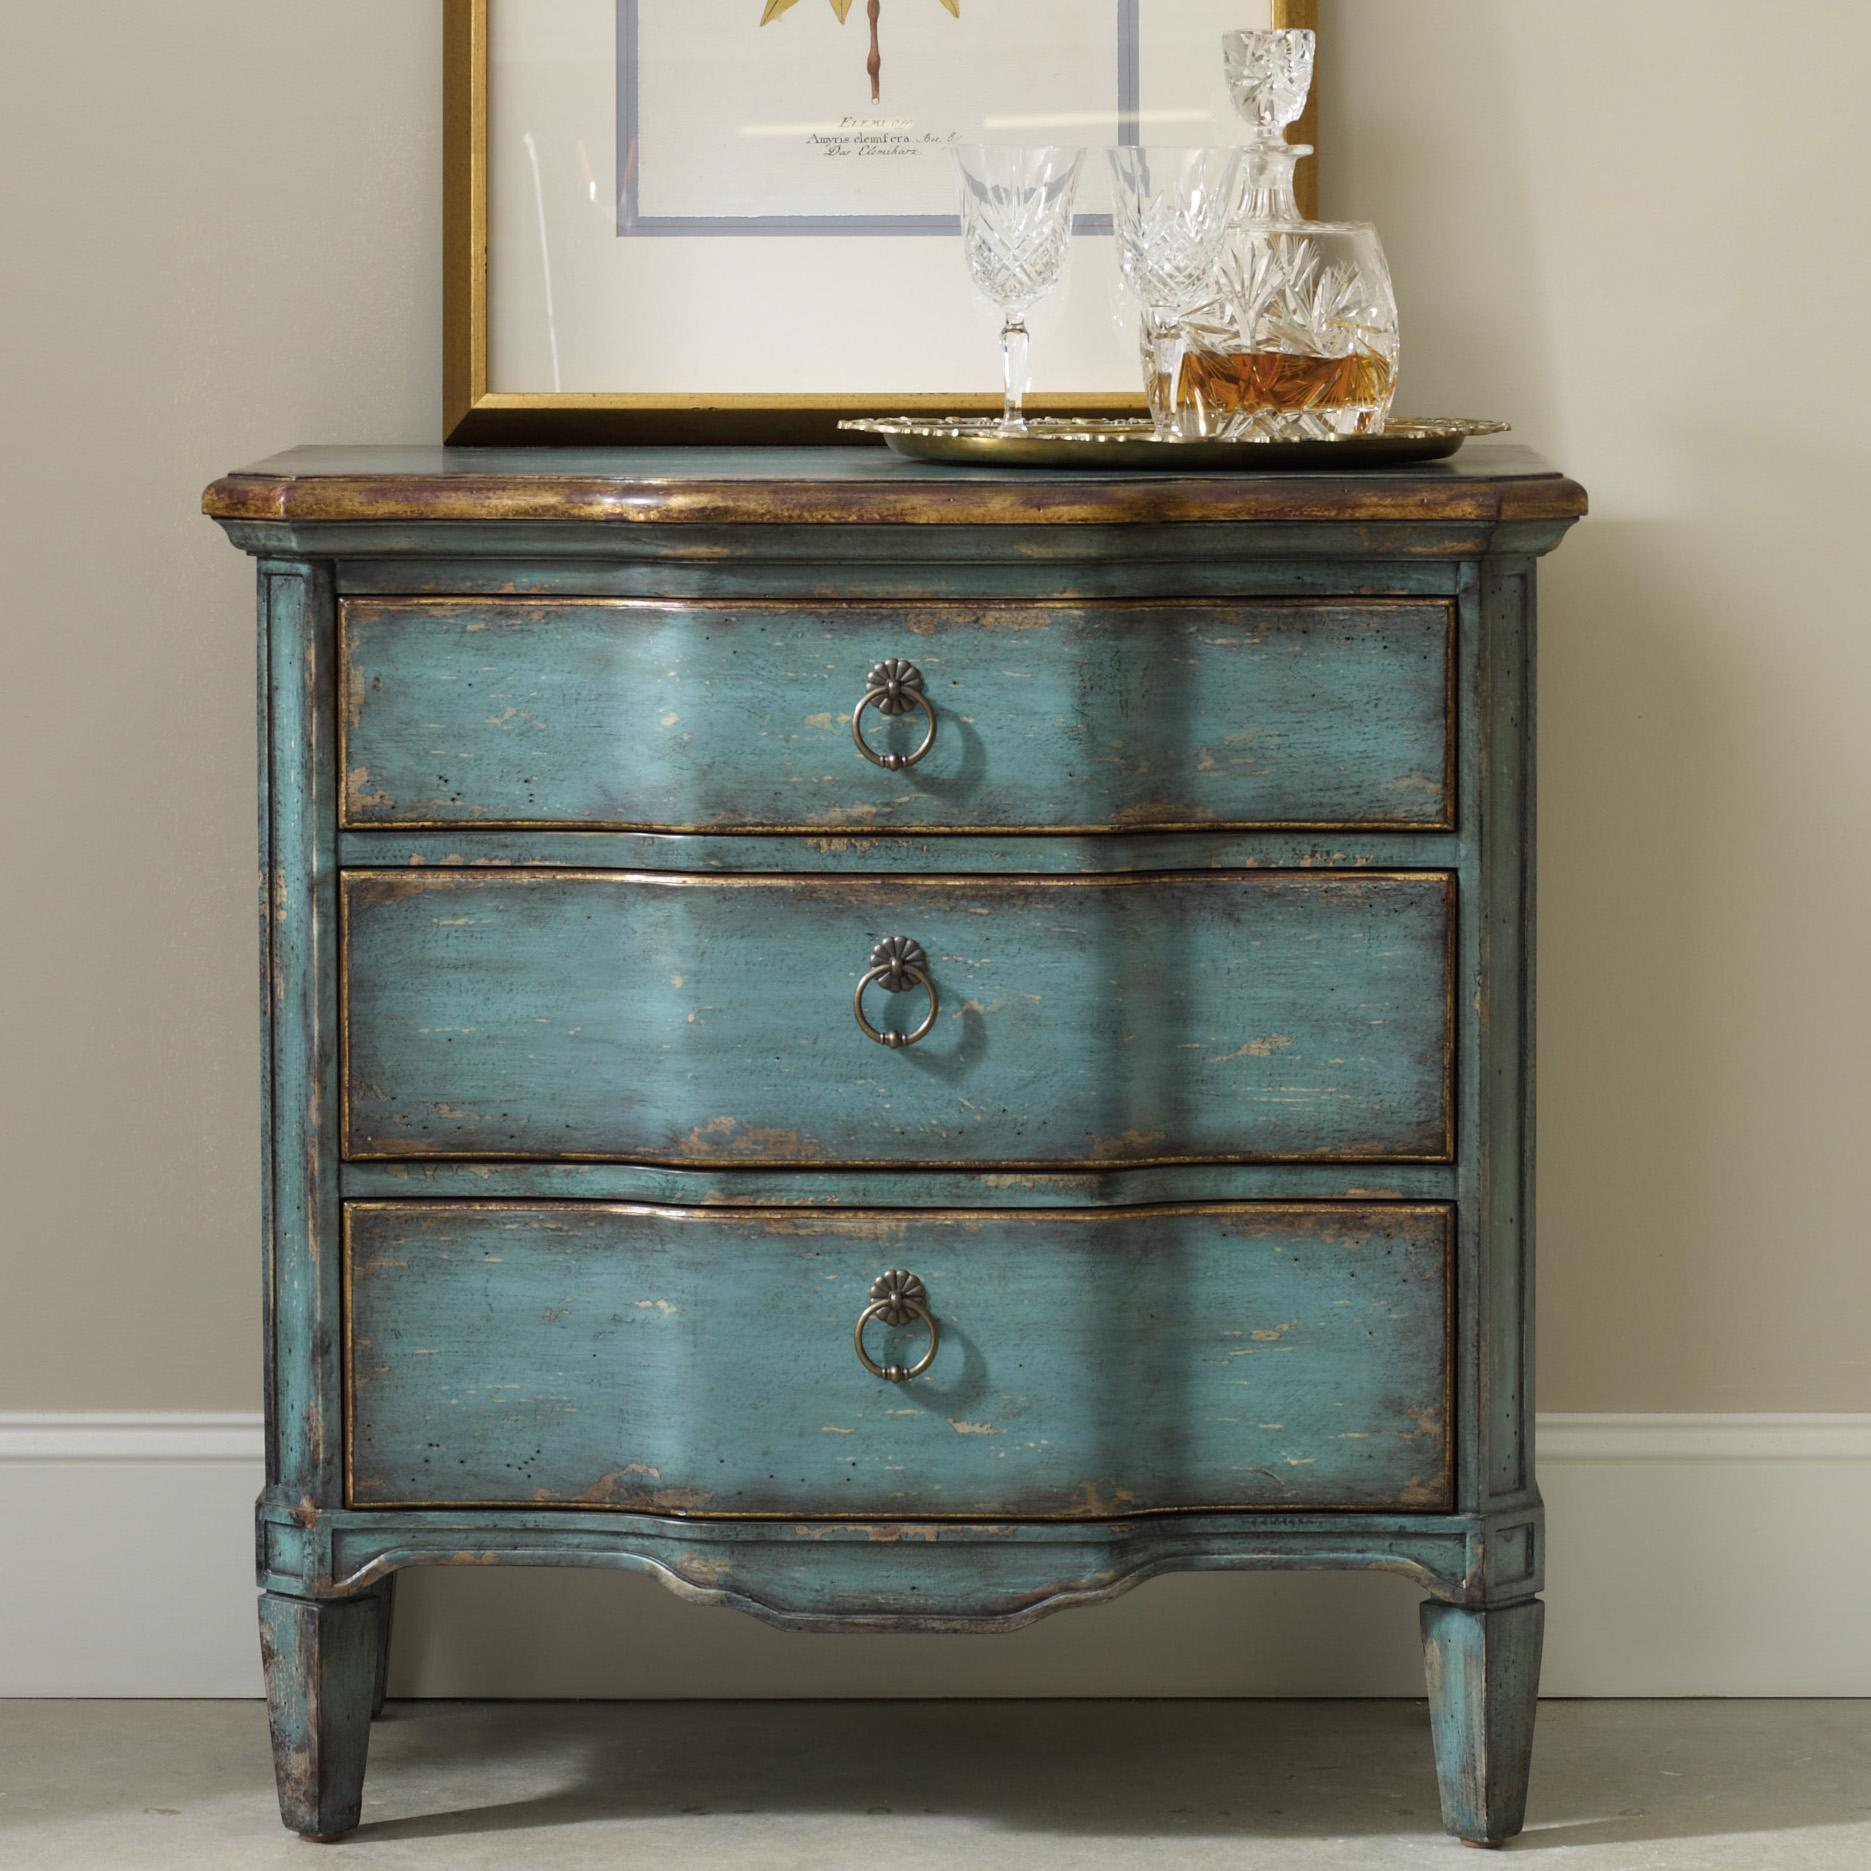 furniture more character with accent cabinets jeanettejames cabinet glass doors small gordmans chairs distressed corner big lots end tables drawer chest tall shallow cabi blue